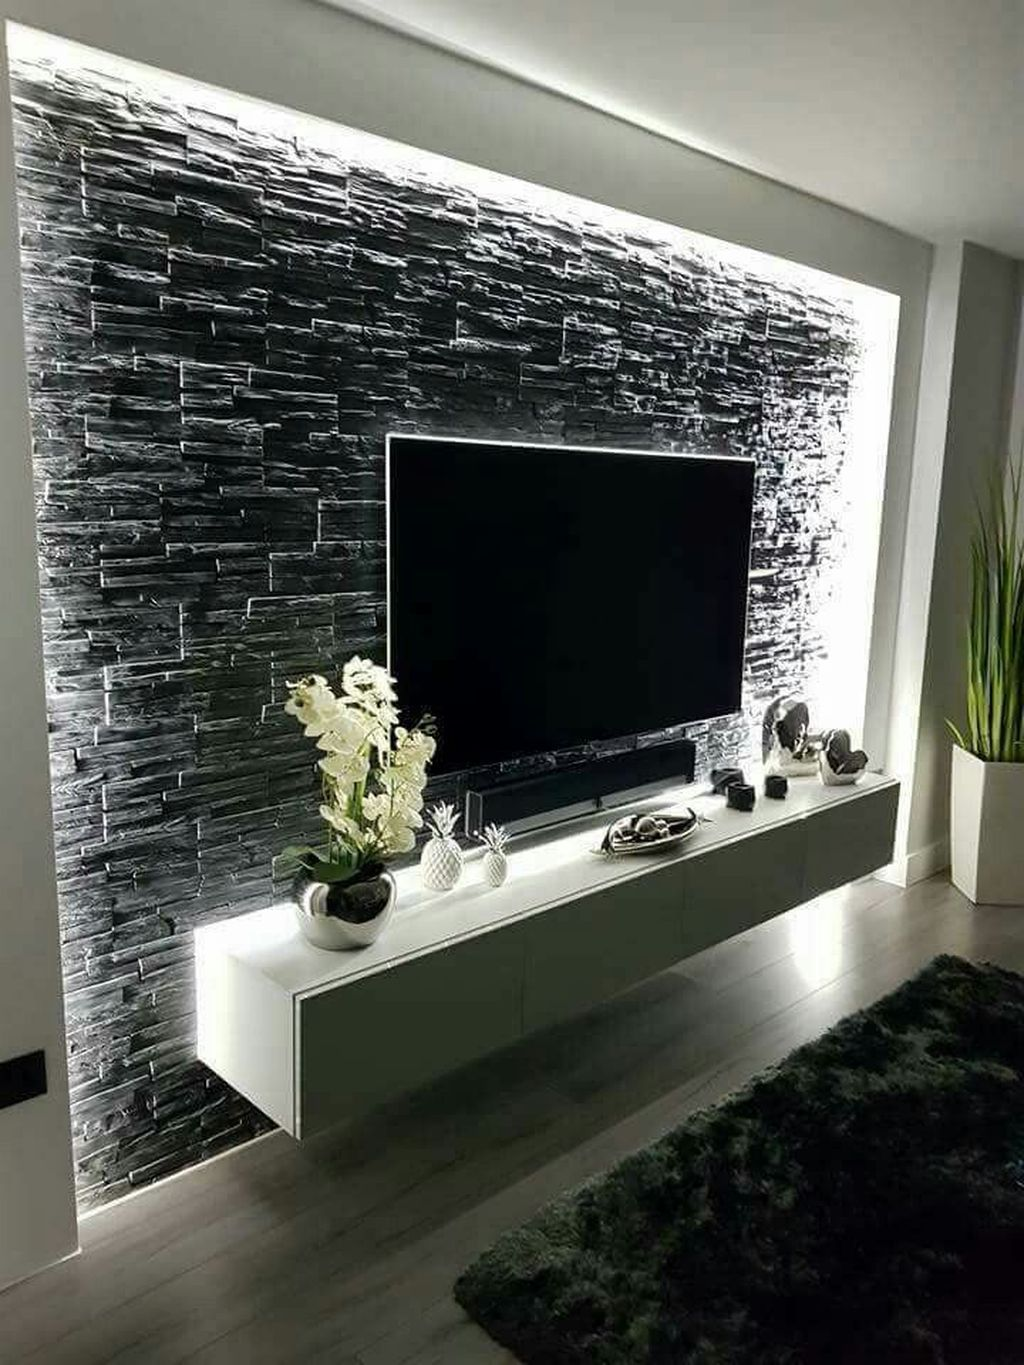 44 The Best Tv Wall Decor Ideas For Living Room Popy Home Living Room Tv Wall Living Room Designs Tv Wall Design #tv #wall #decor #ideas #for #living #room